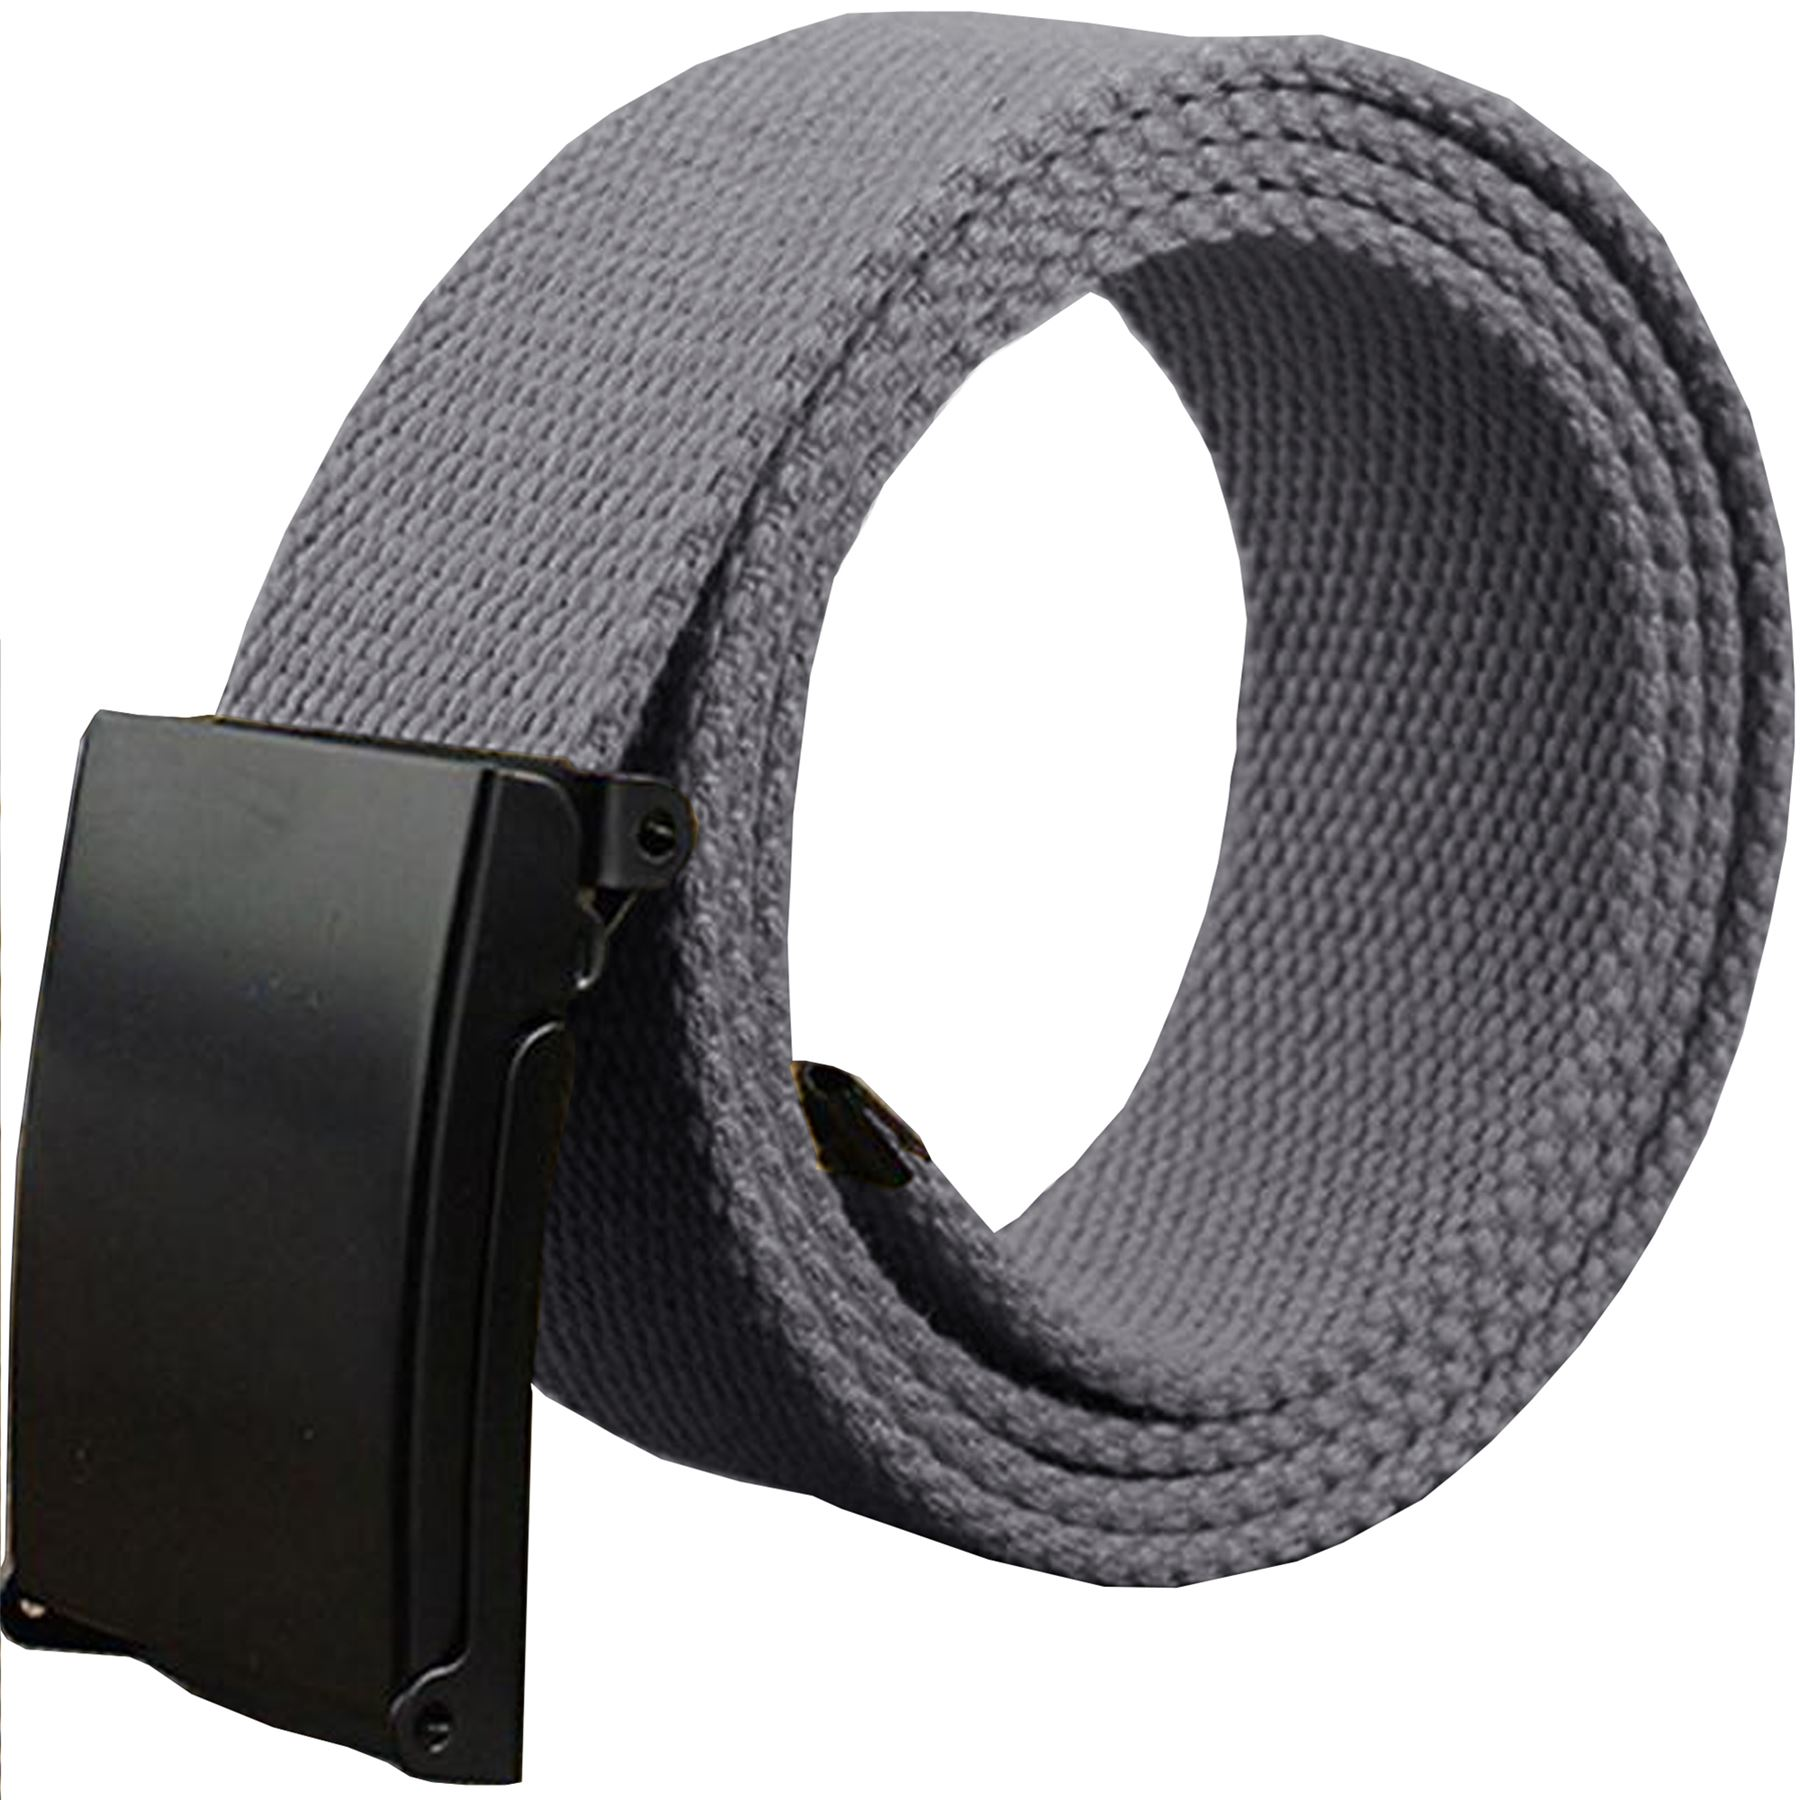 Kruze-Mens-Womens-Unisex-Canvas-Webbing-Belt-Regular-Big-Size-Buckle-Army-Belts Indexbild 9